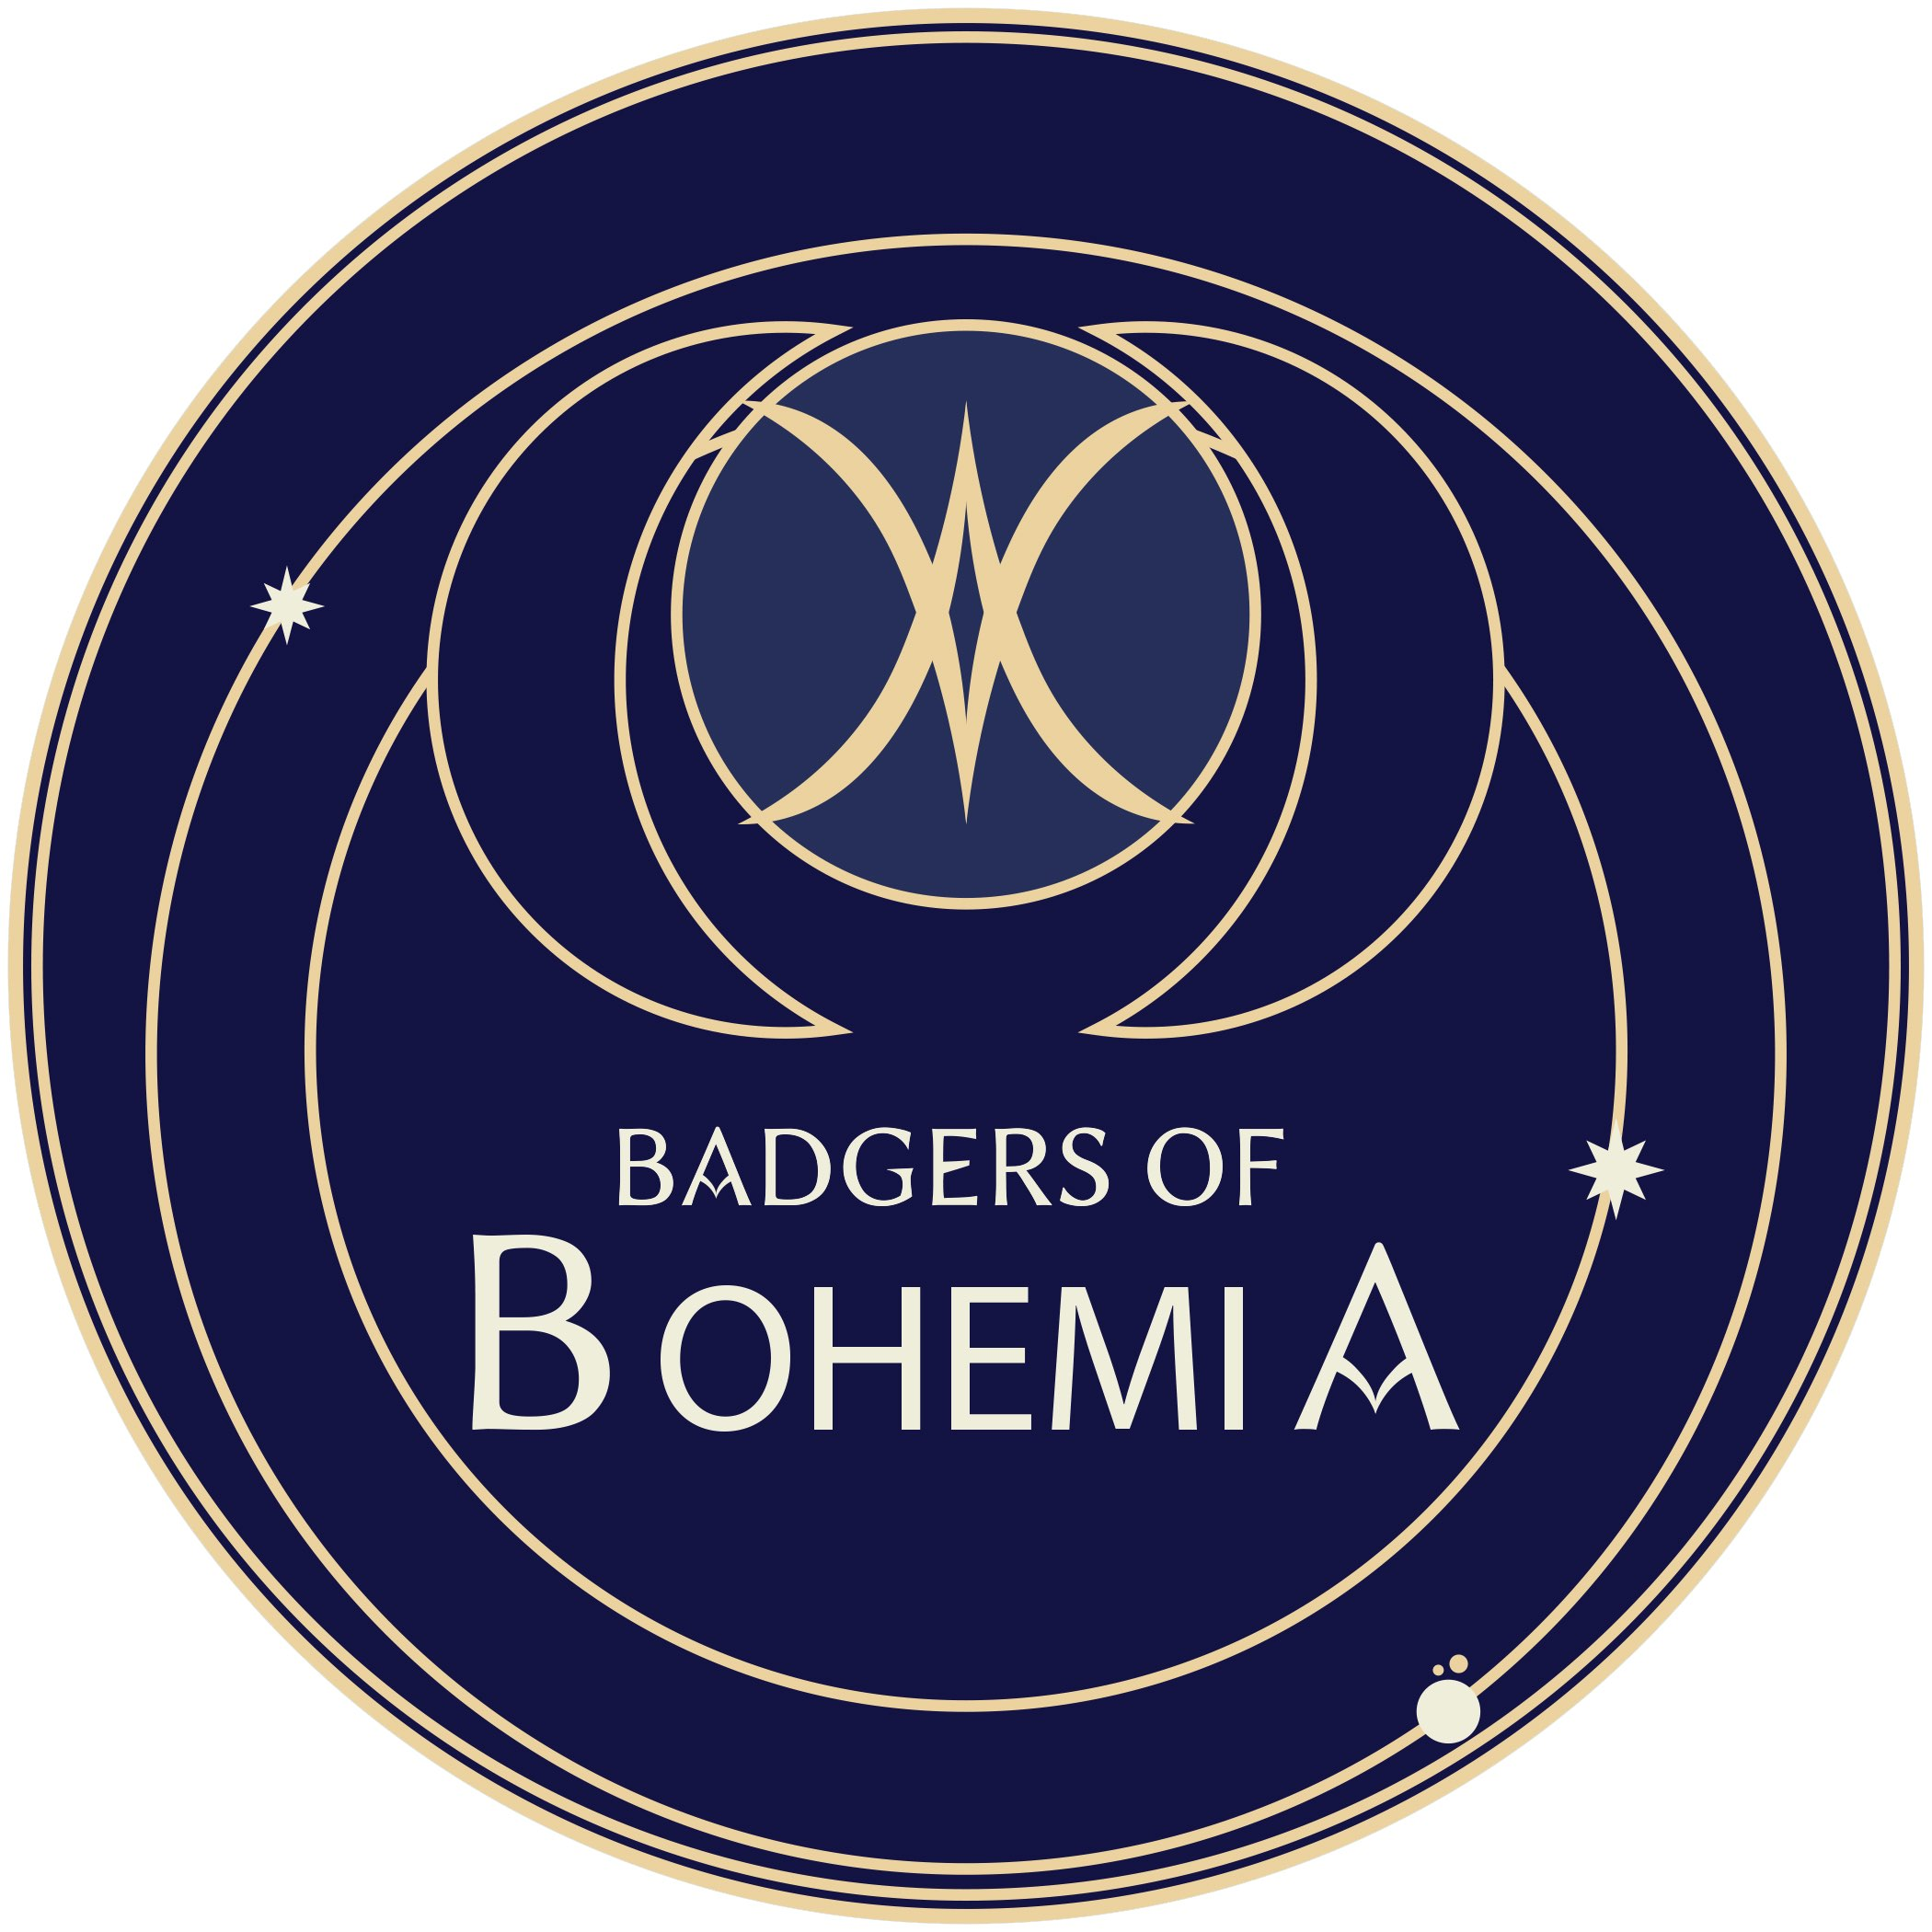 Badgers of Bohemia